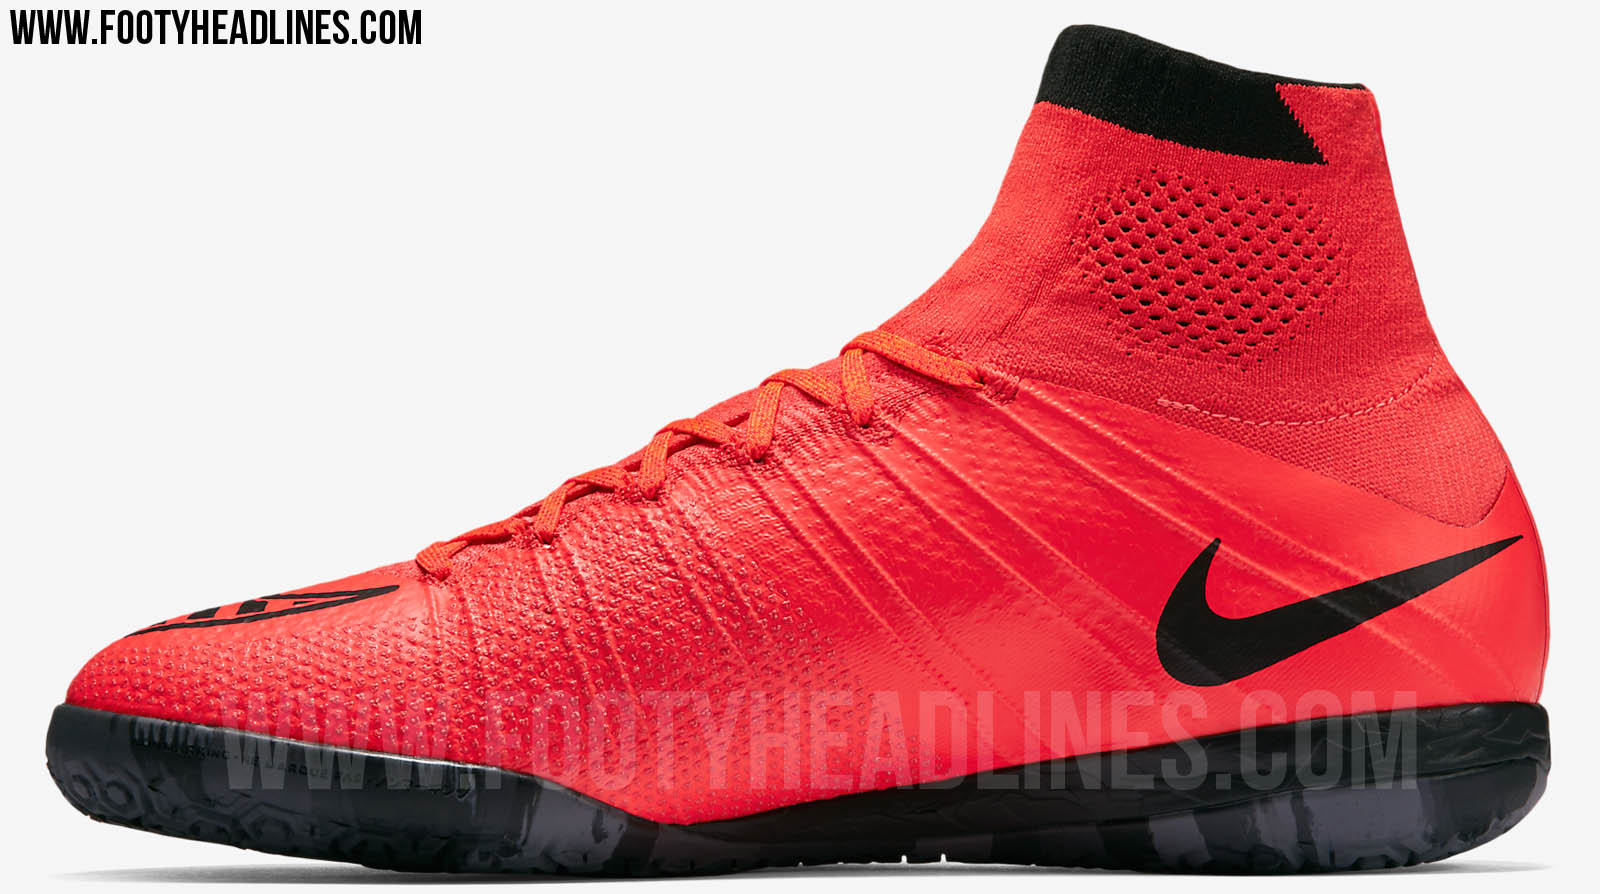 bb017a7ae02 Red Nike Mercurial X Proximo Boots Revealed - Footy Headlines